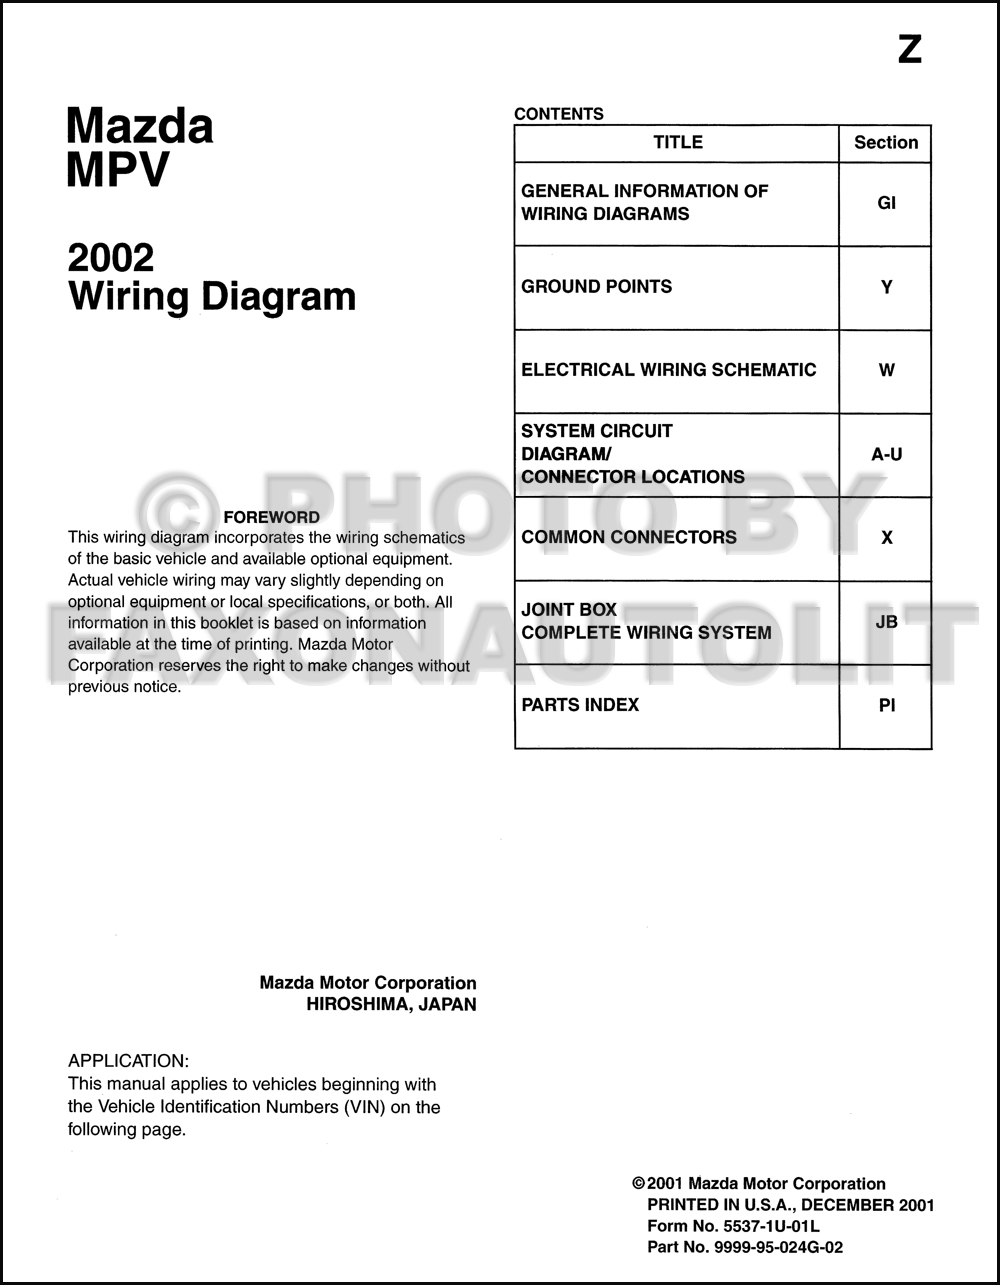 2002 Mazda Mpv Wiring Diagram Manual Original 2001 Mazda Miata Wiring  Diagram 2002 Mazda Mpv Wiring Diagram